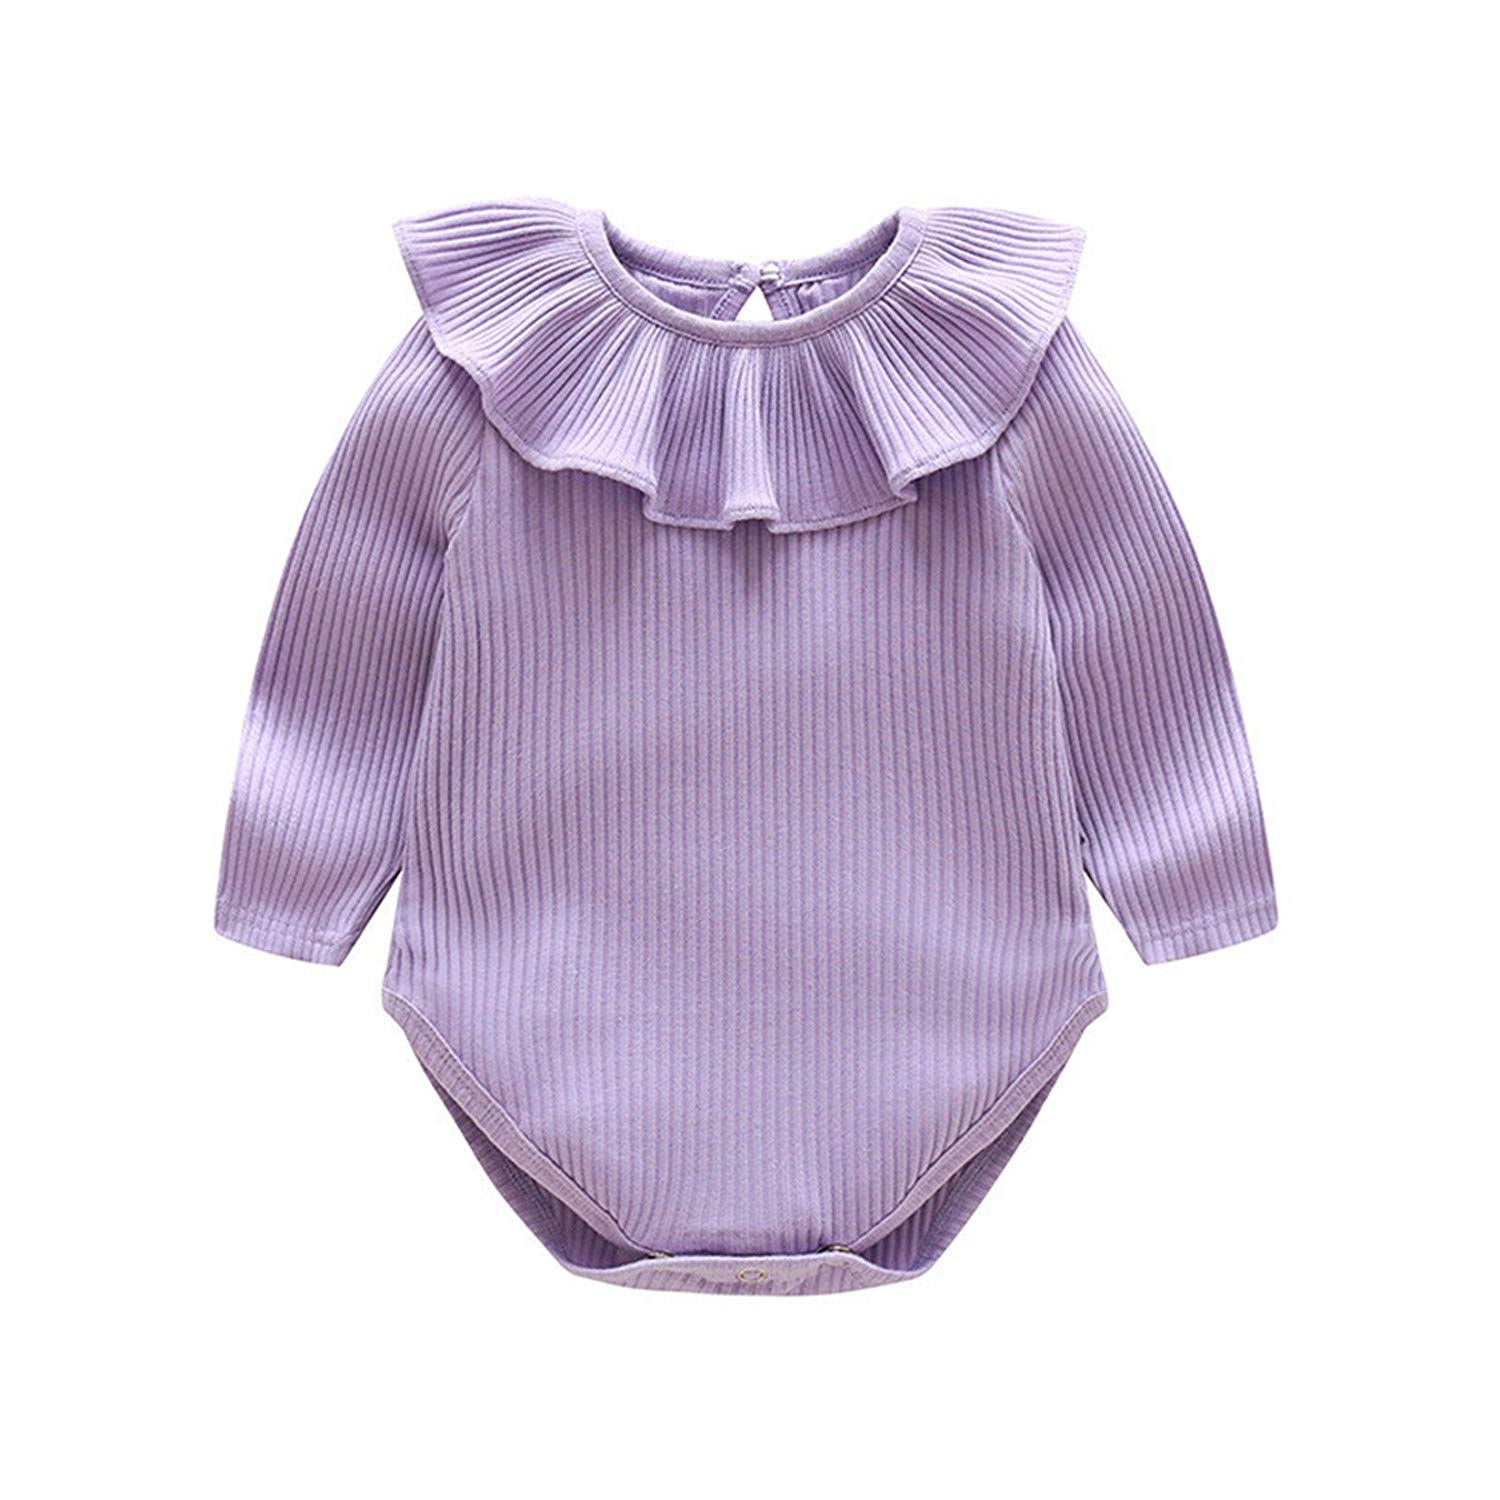 f697a03ce832 Get Quotations · Rompers Cotton Baby Boy Clothes New Long Sleeve Knitted Ruffles  Baby Girl Clothes Infant Jumpsuits Roupas